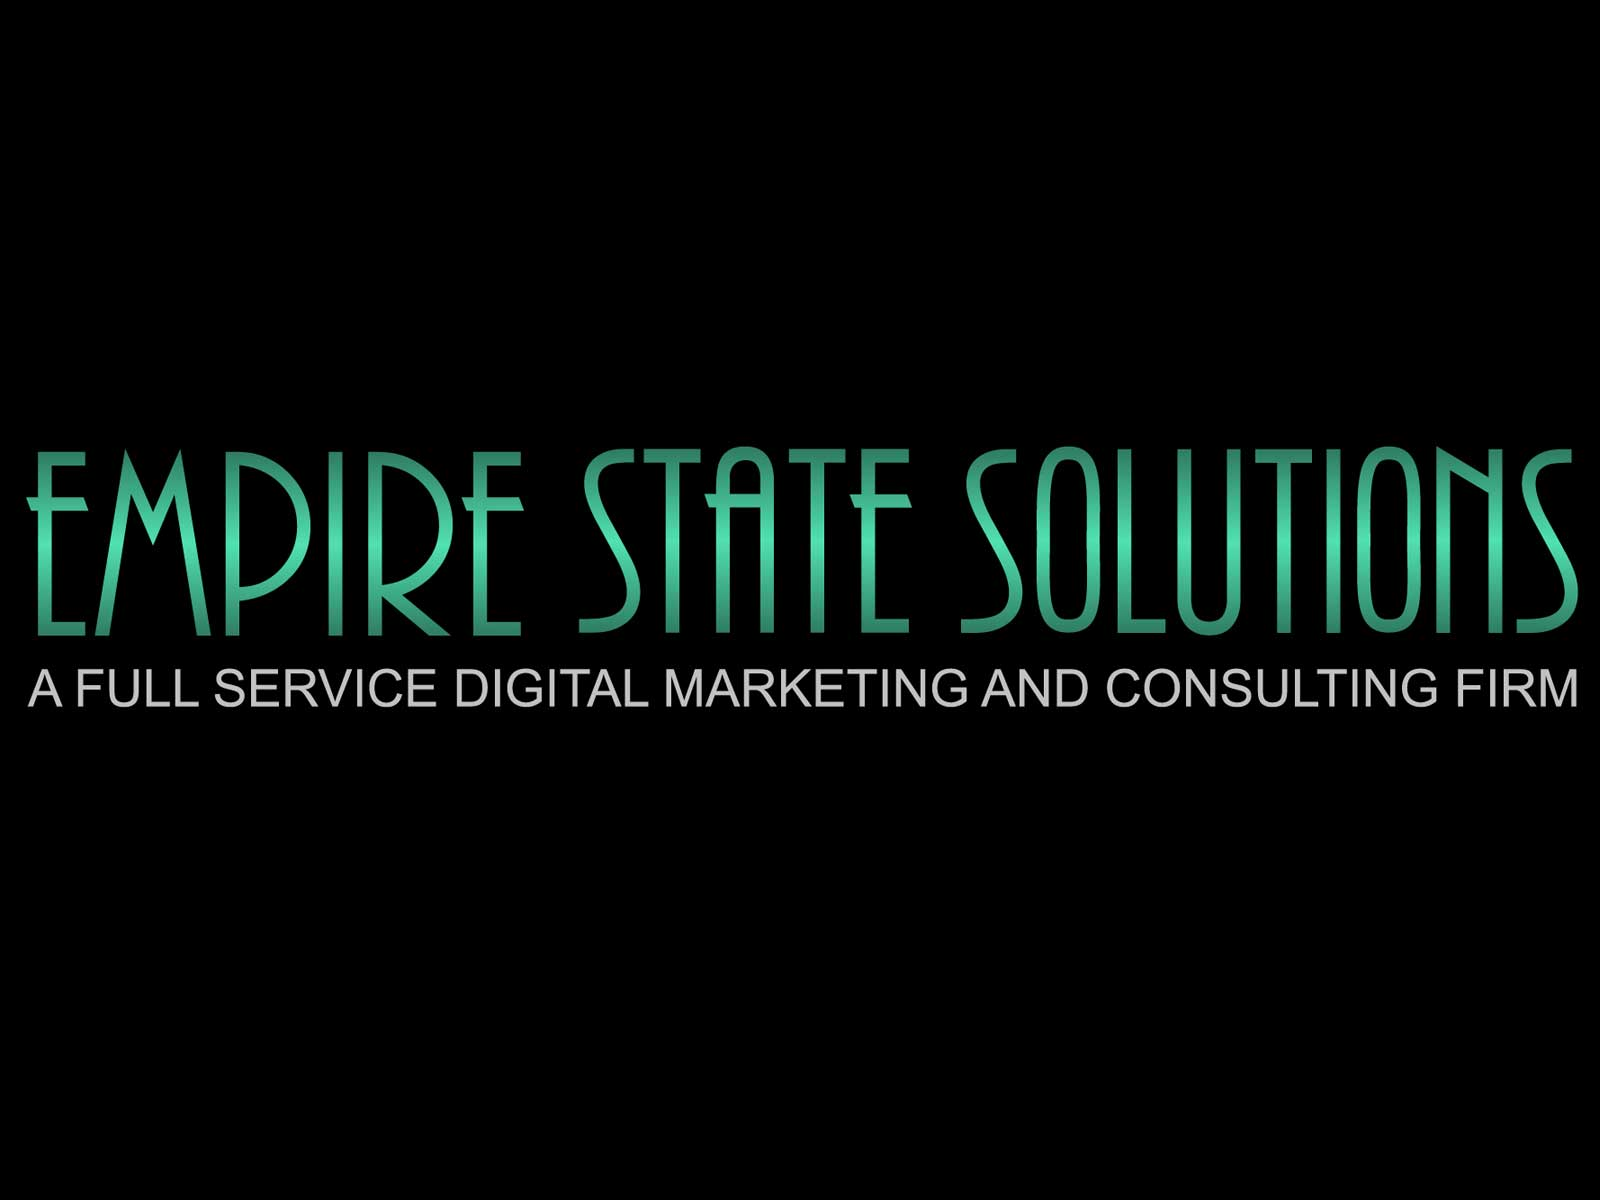 Empire State Solutions Logo